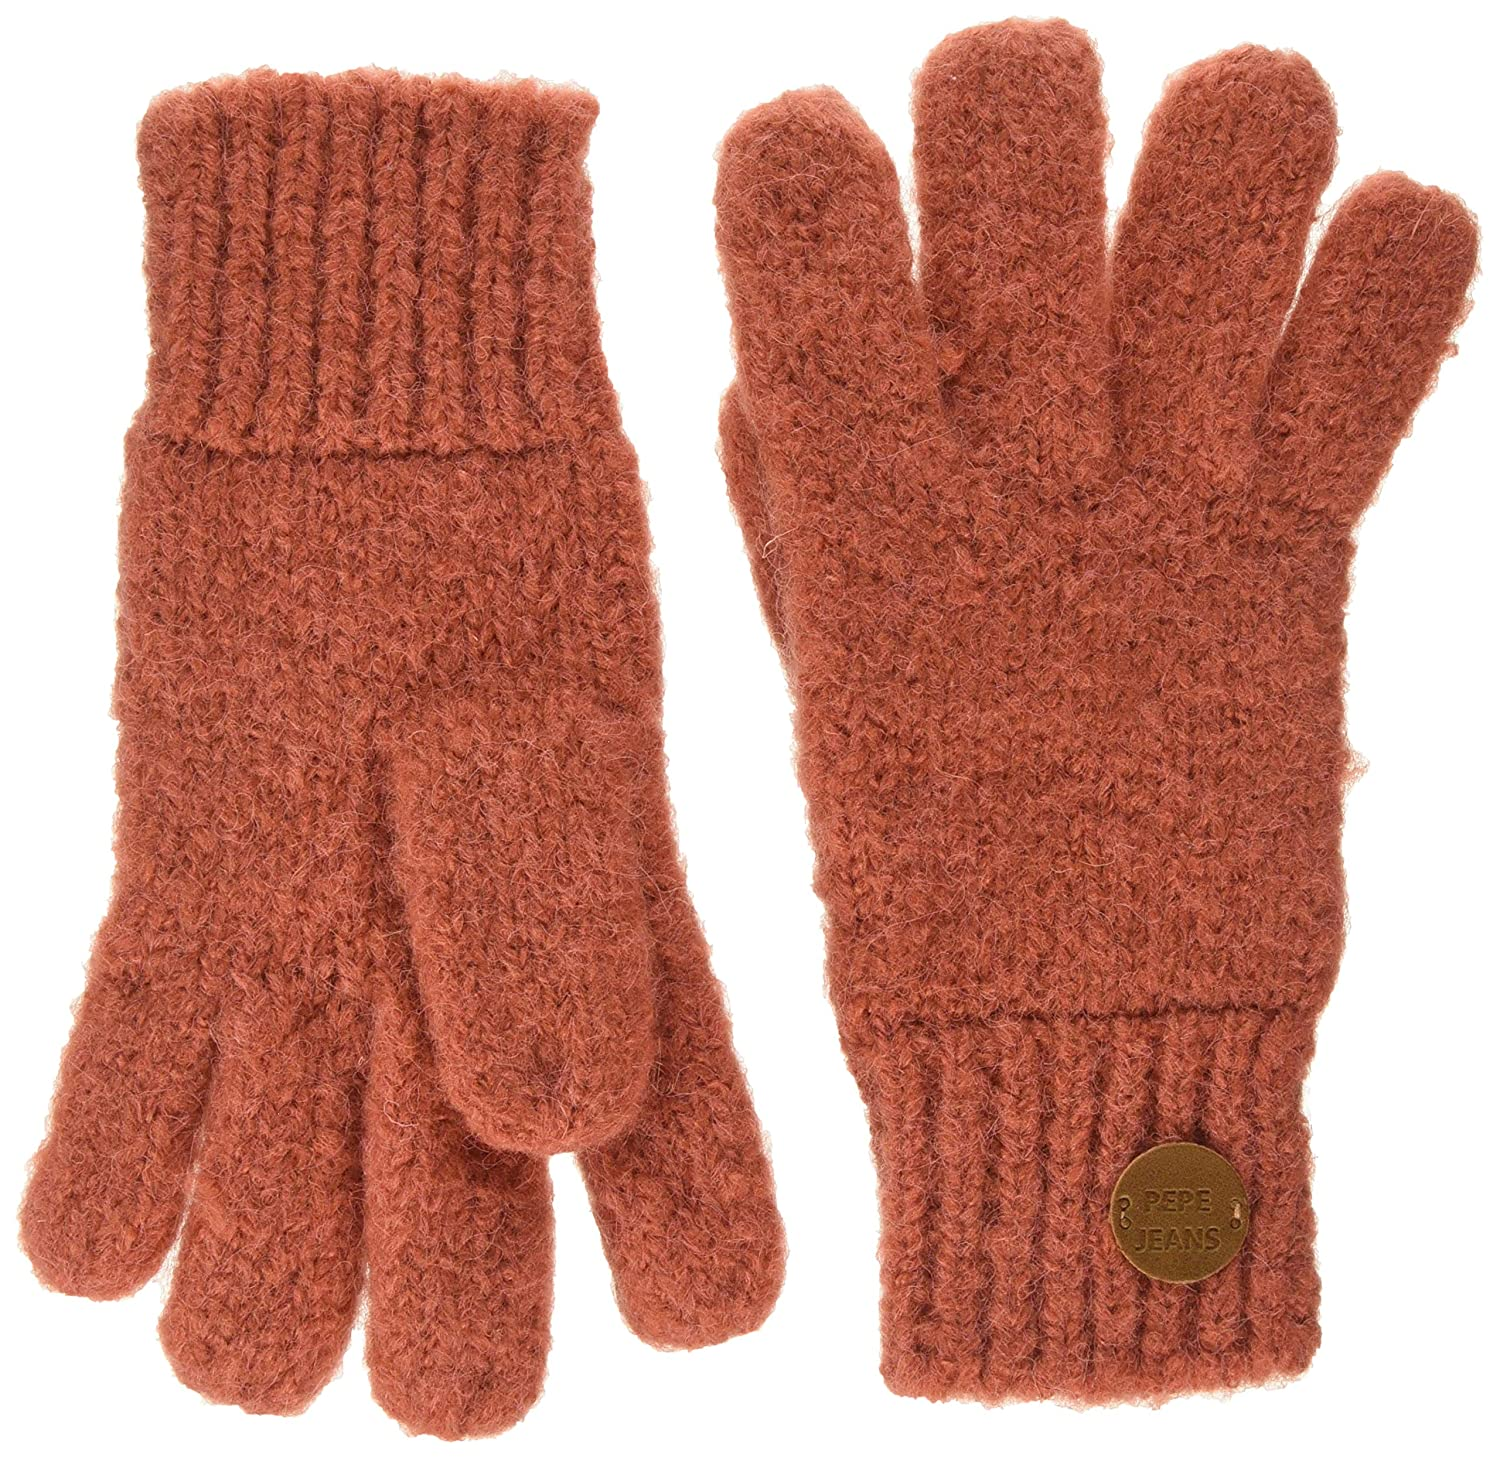 Pepe Jeans Pol Gloves Guantes para Mujer